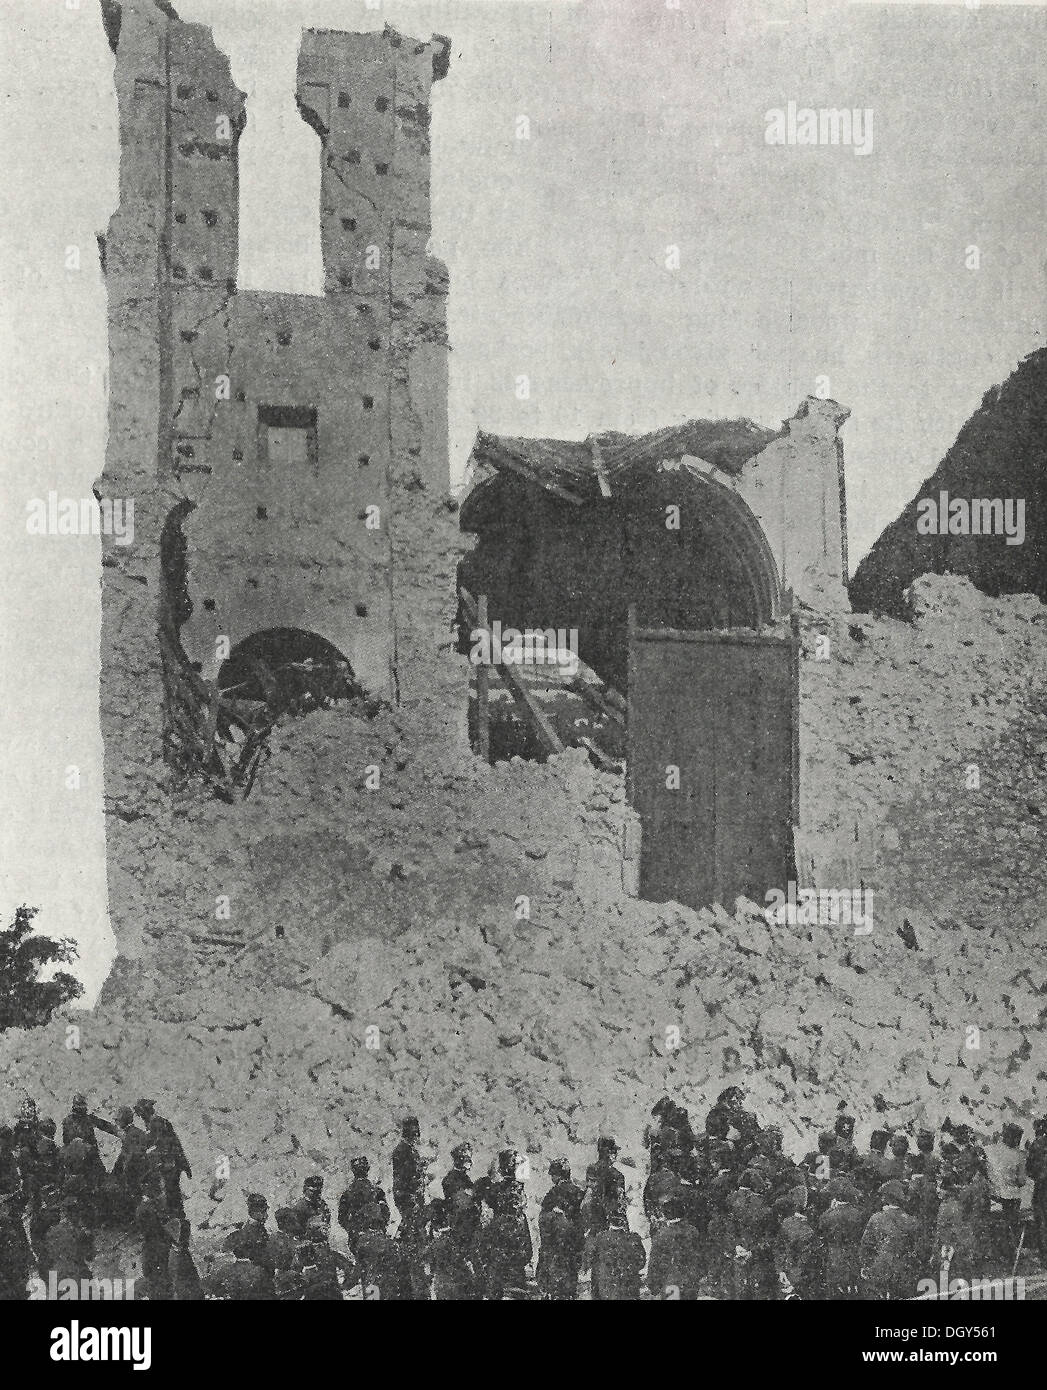 A Demolished Church in Messina - Messina Earthquake, Italy 1908 - Stock Image